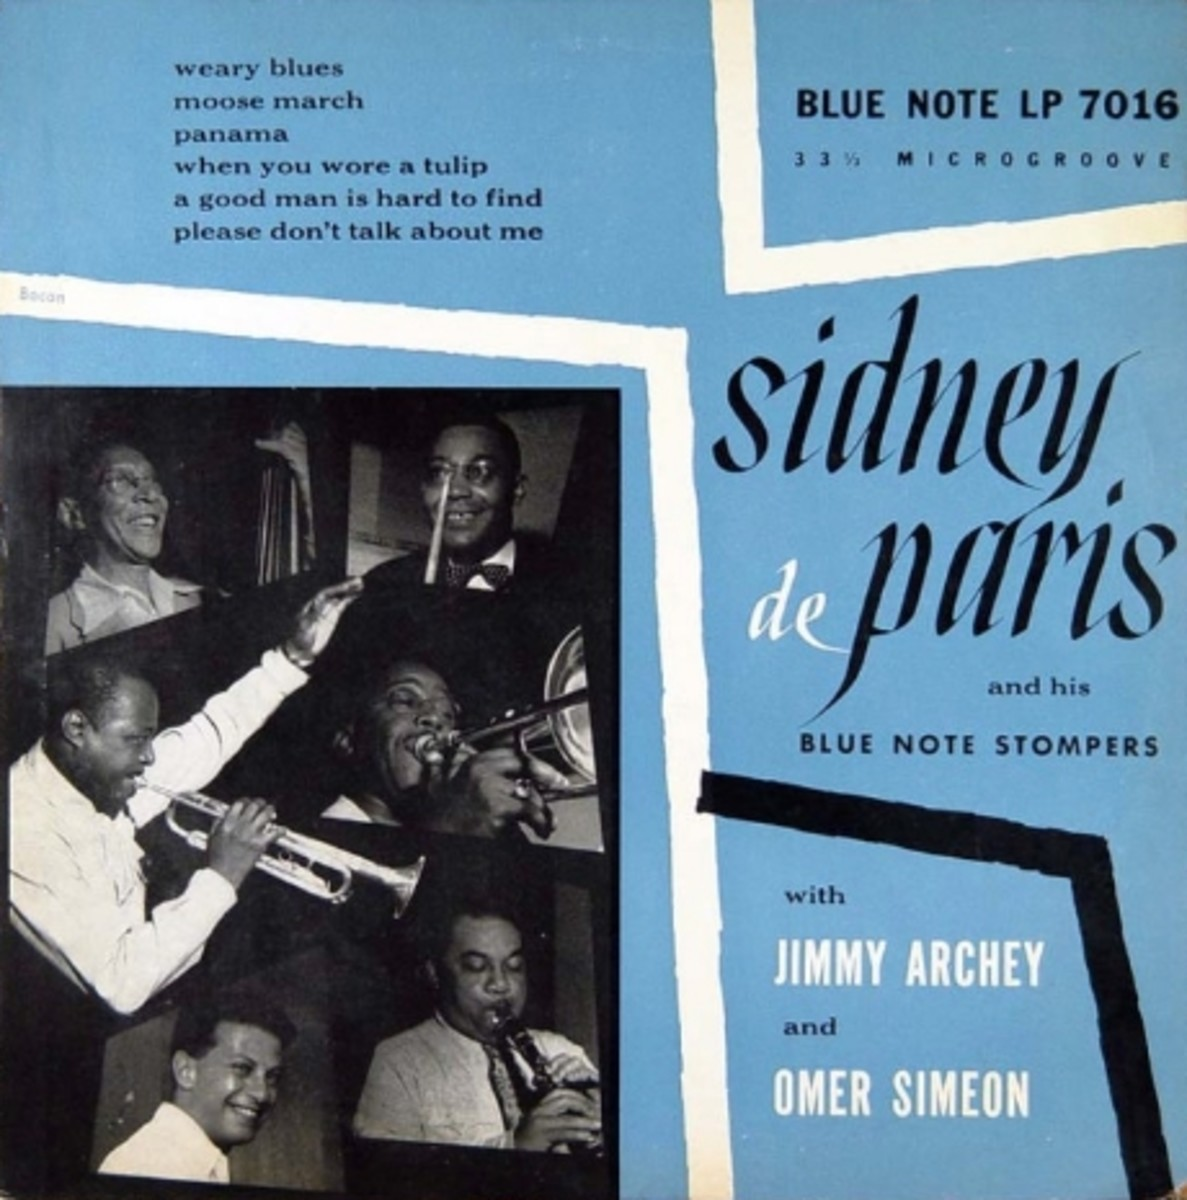 "Sidney de Paris & His Blue Note Stompers Blue Note Records BLP 7016 10"" LP Vinyl Microgroove Record  (1951) Album Cover Design by Paul Bacon Photo by Francis Wolff (1951)"